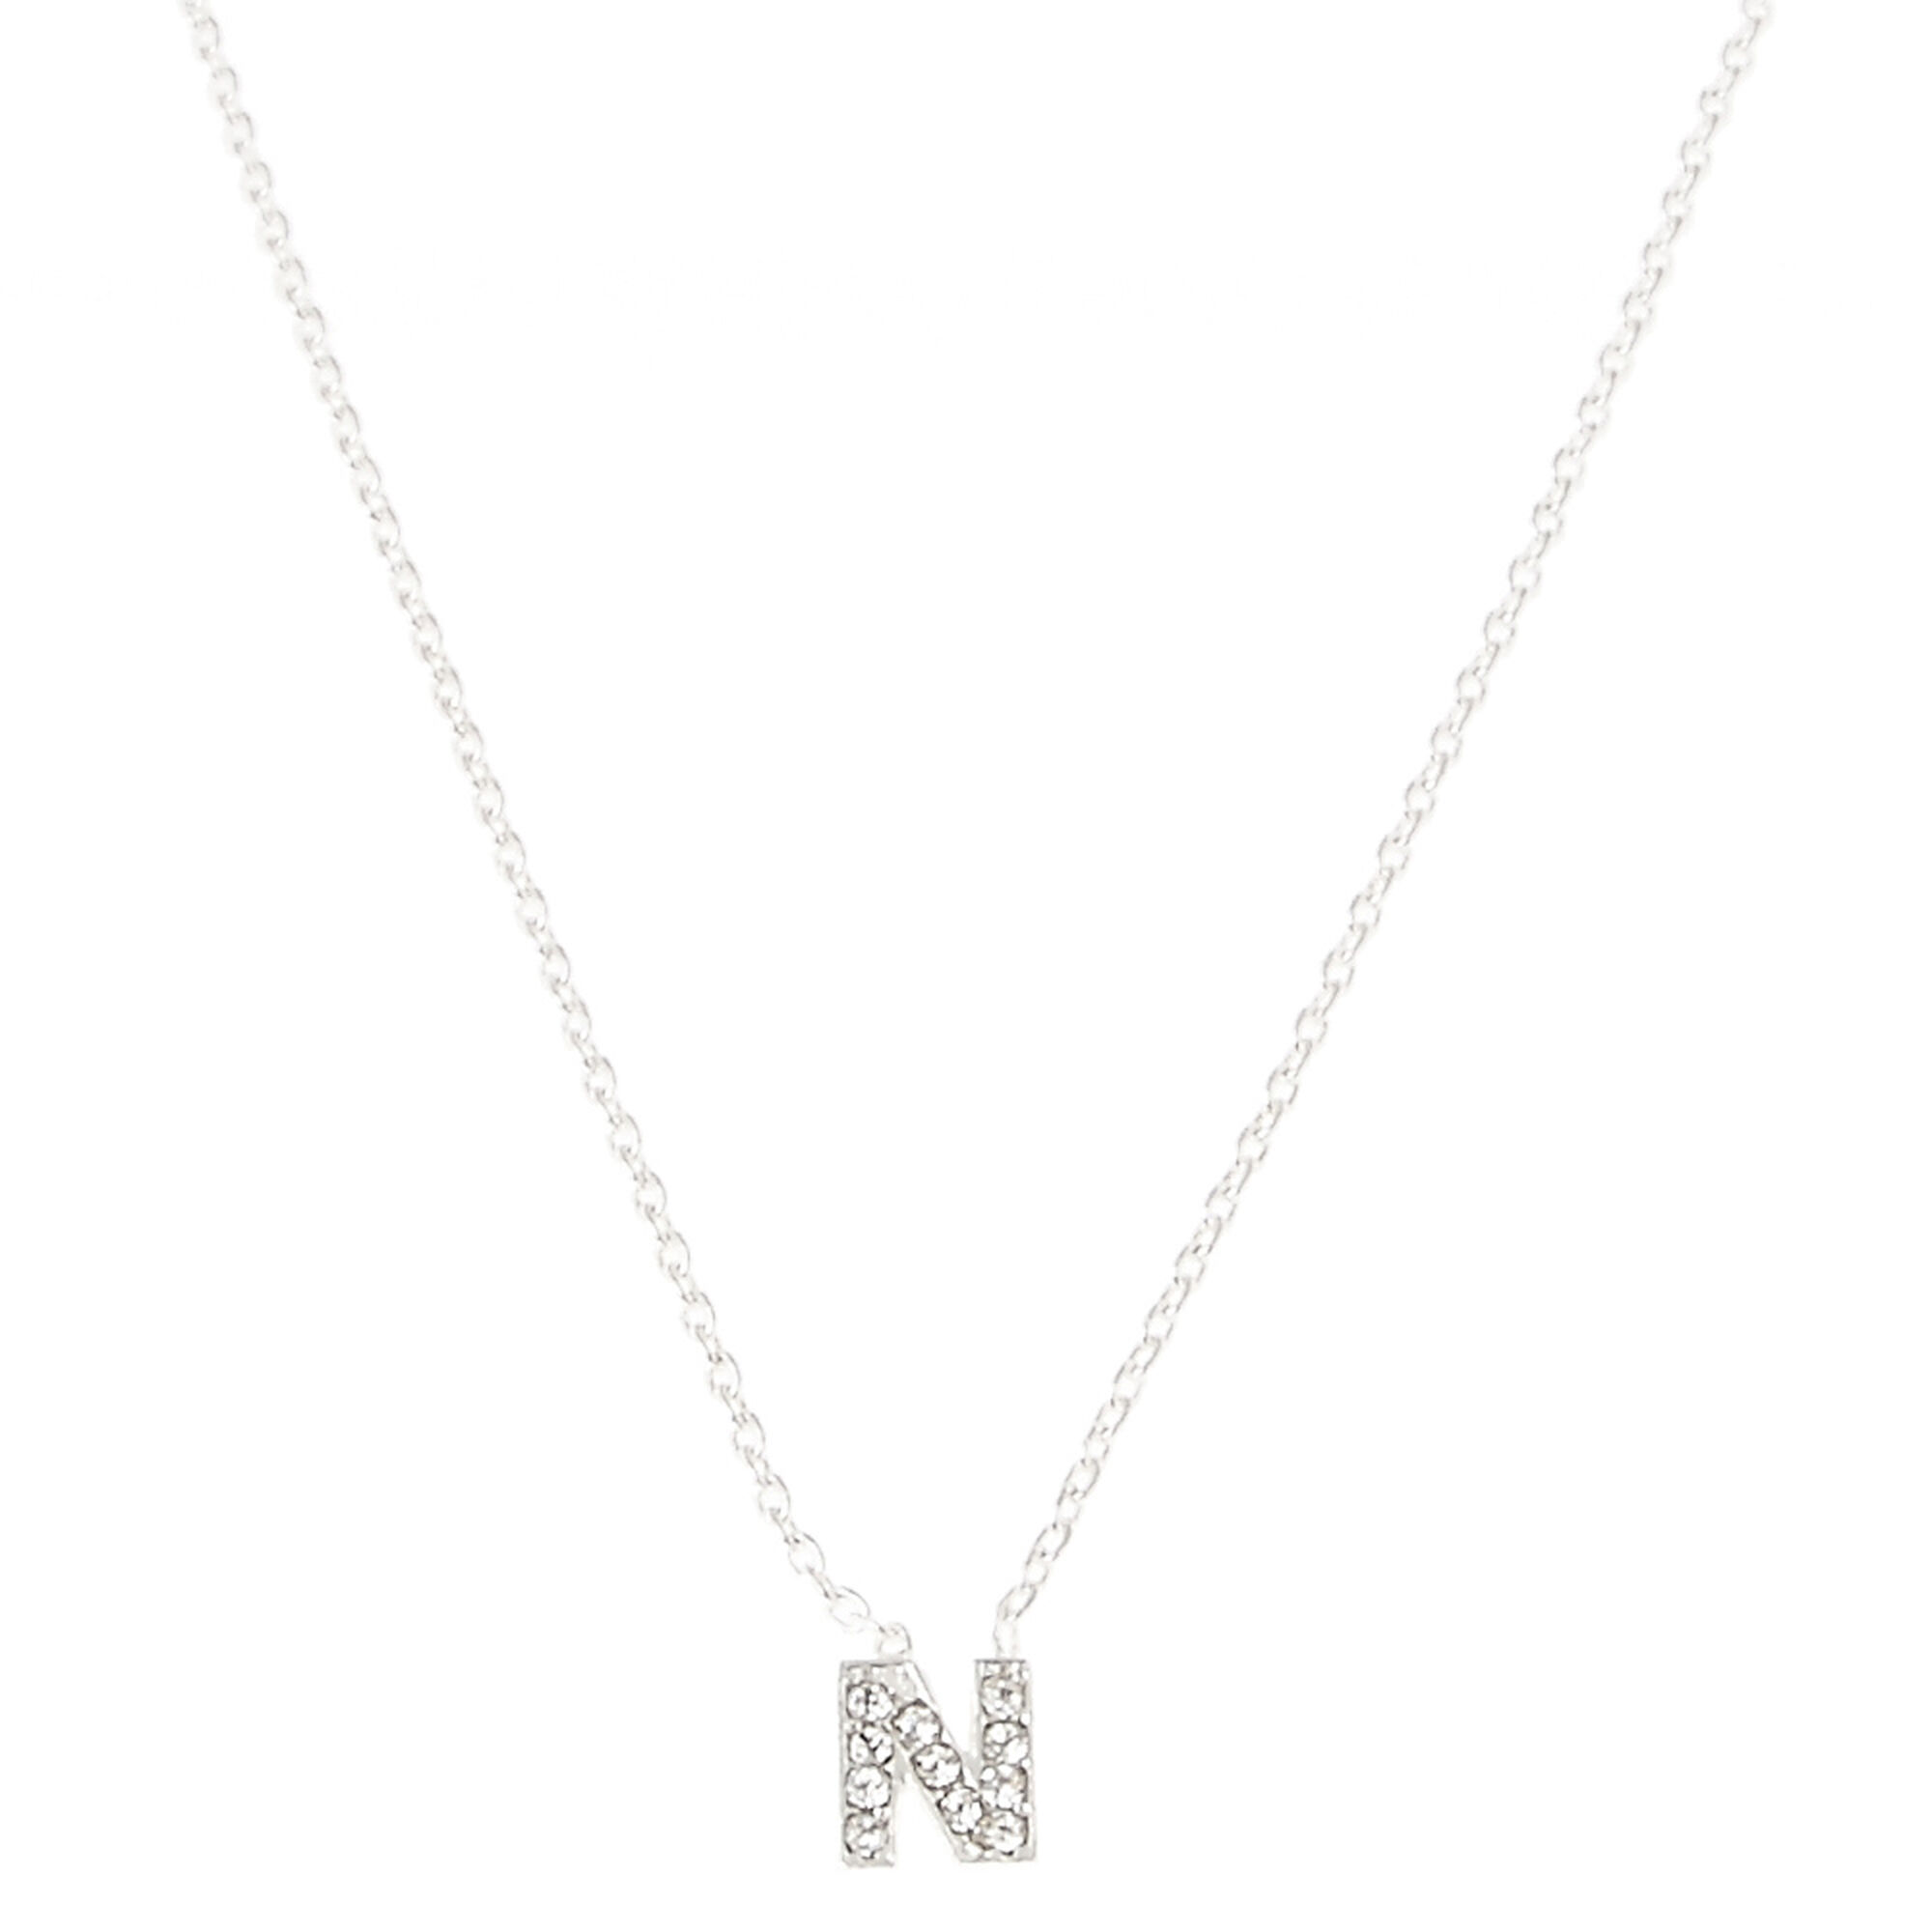 N pendant necklace claires us n pendant necklace aloadofball Gallery